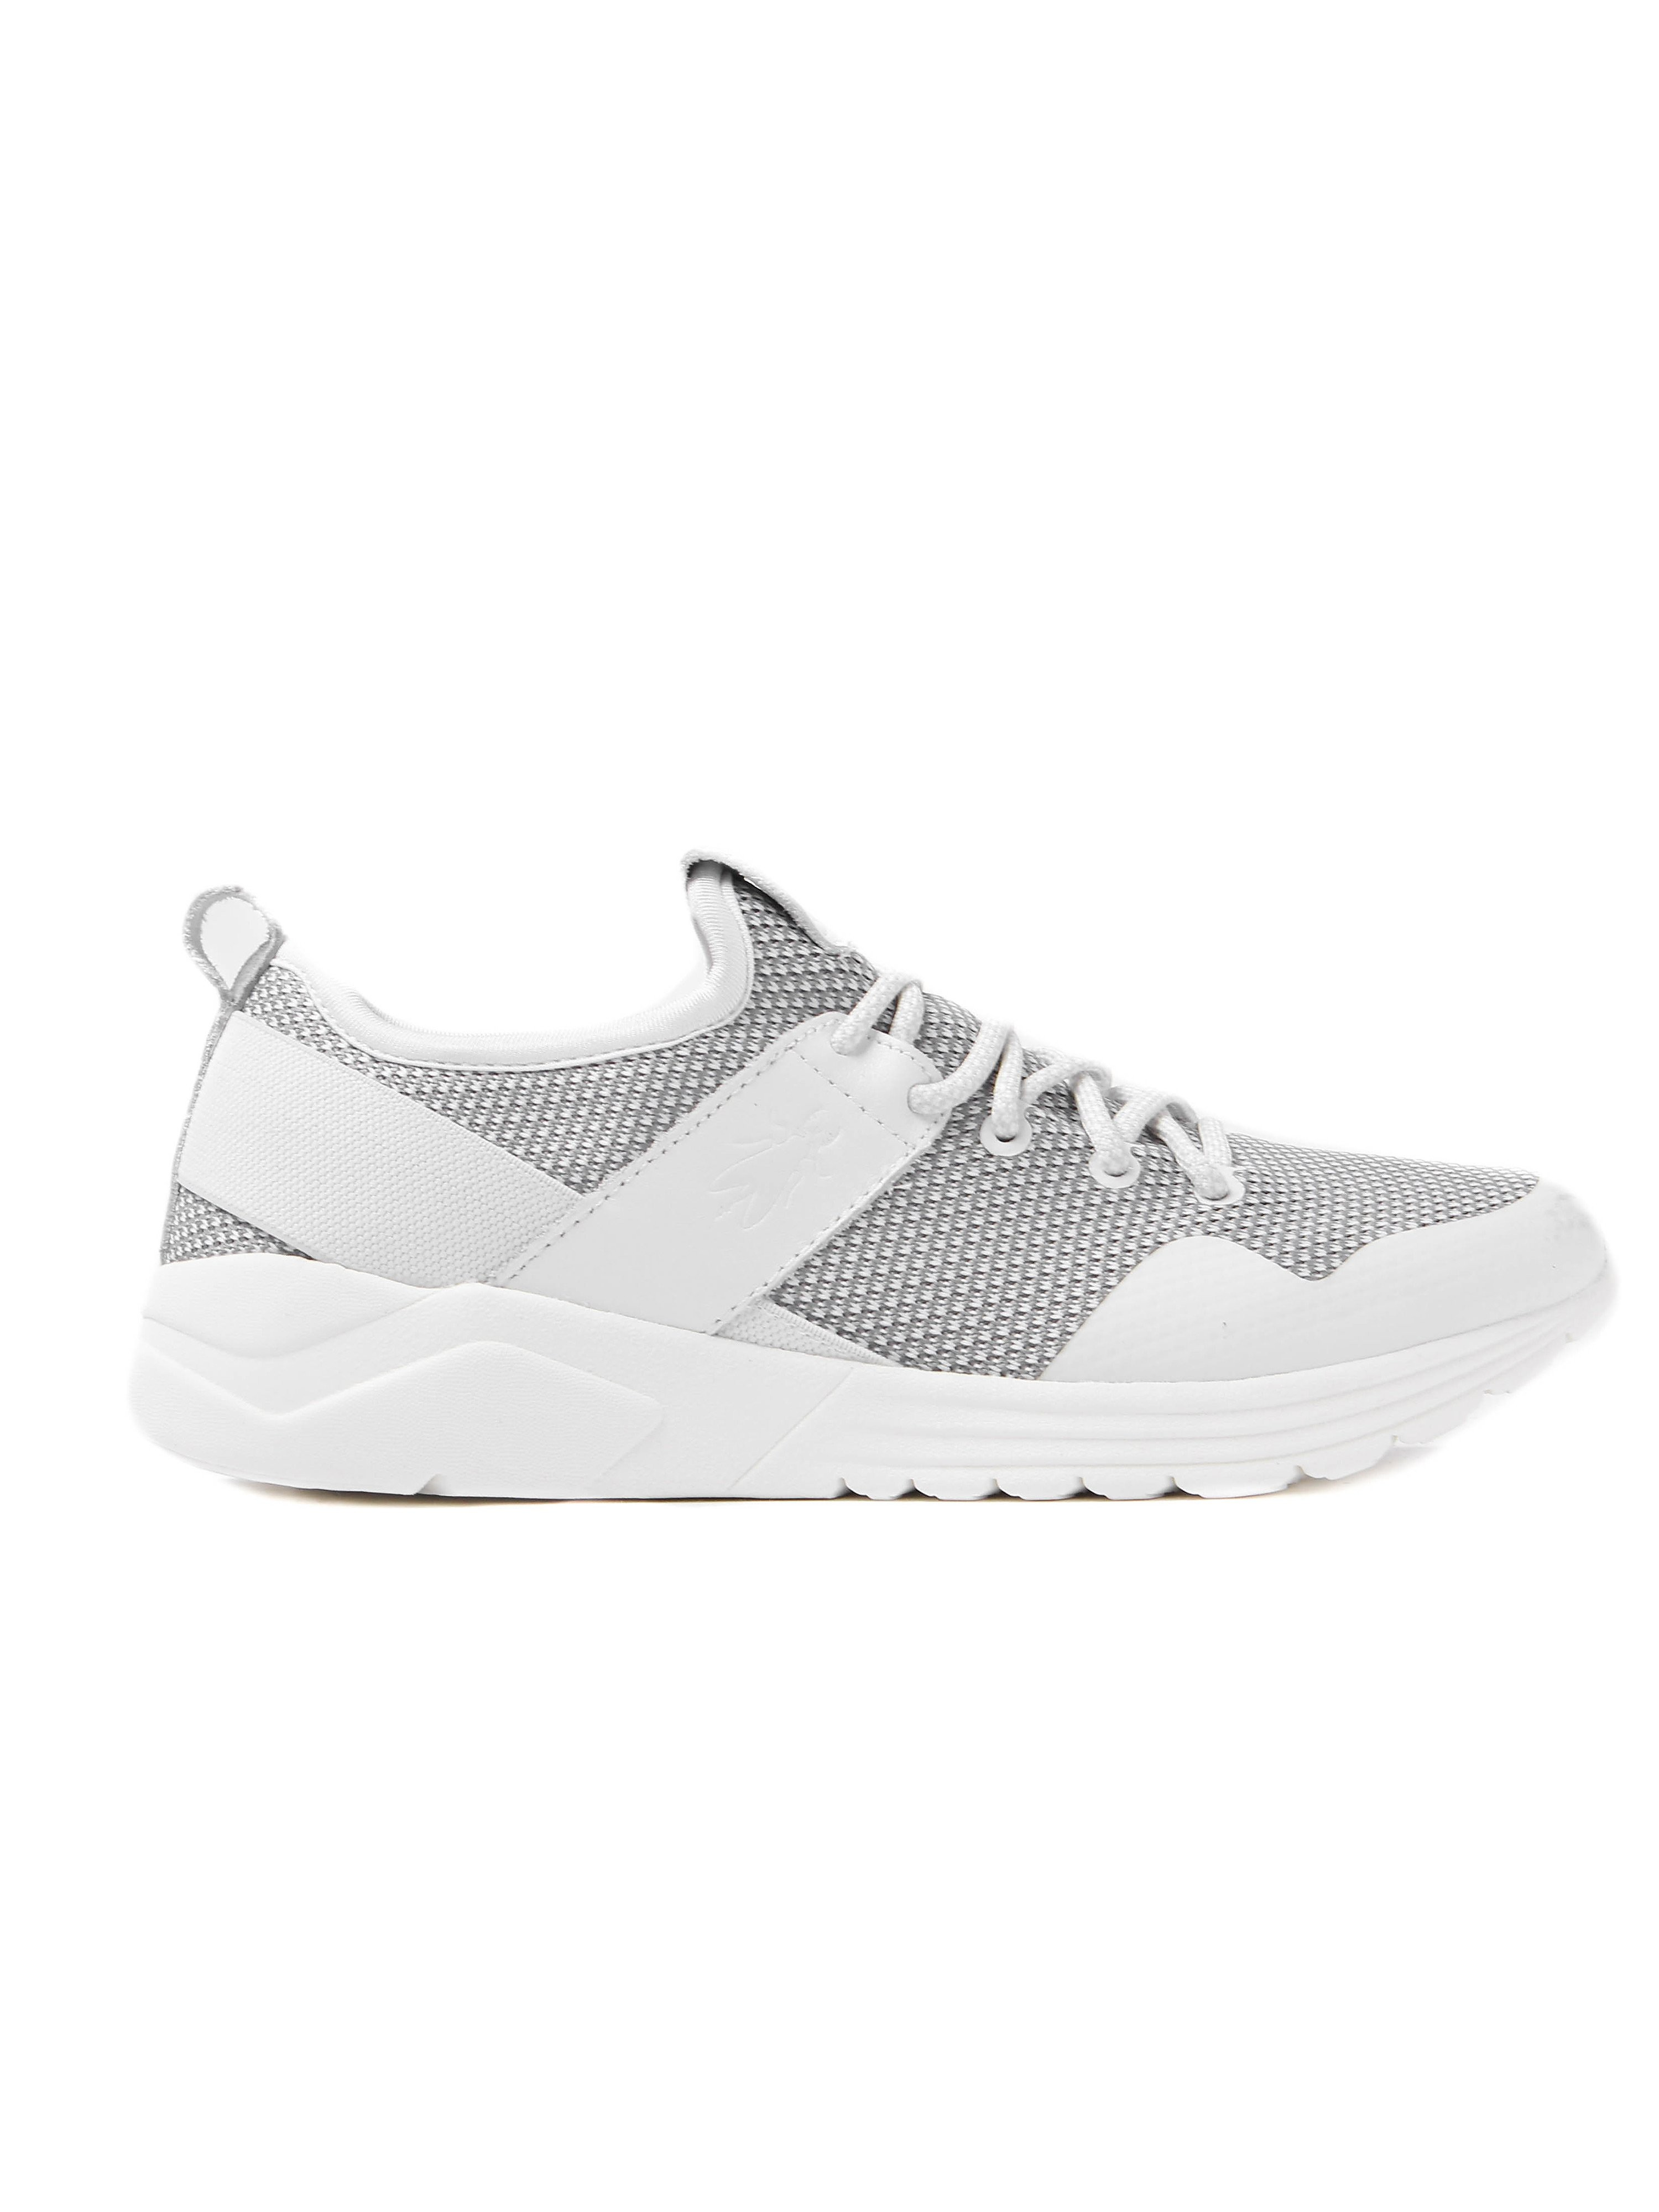 Fly London Women's Salo Knitted Slip On Trainers - Off White